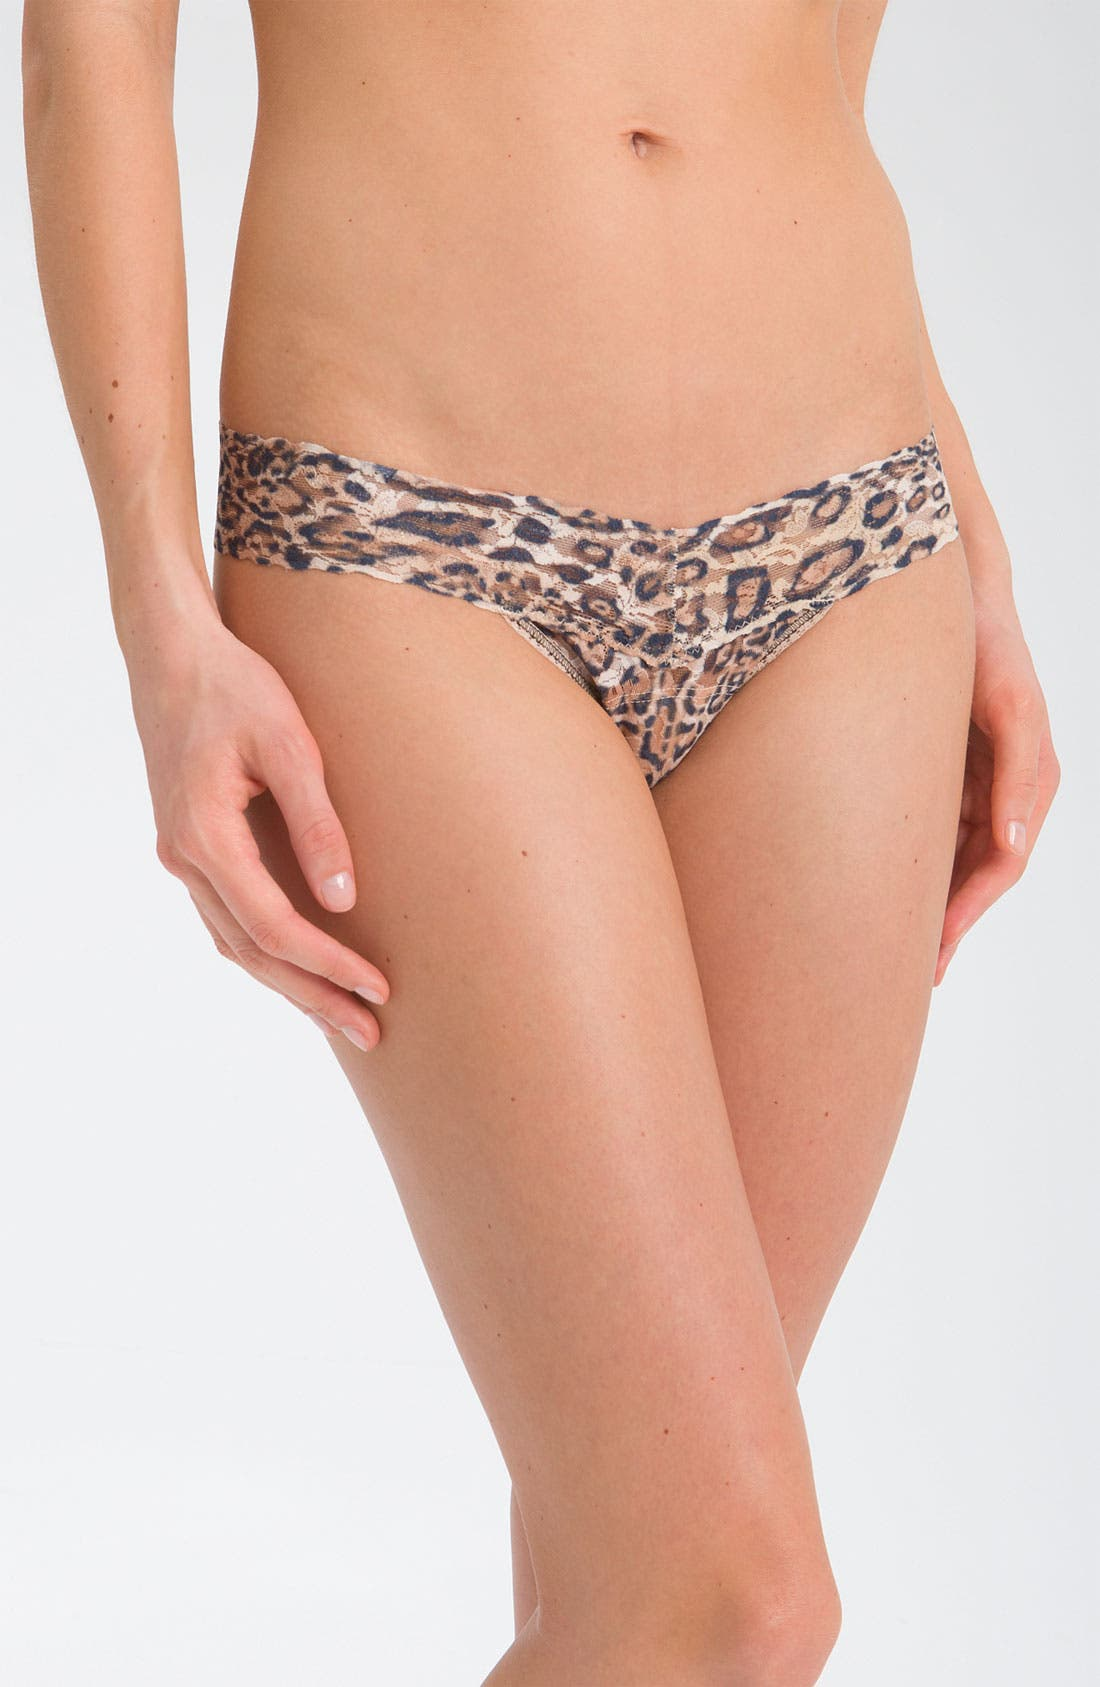 Main Image - Hanky Panky 'Leopard' Low Rise Thong